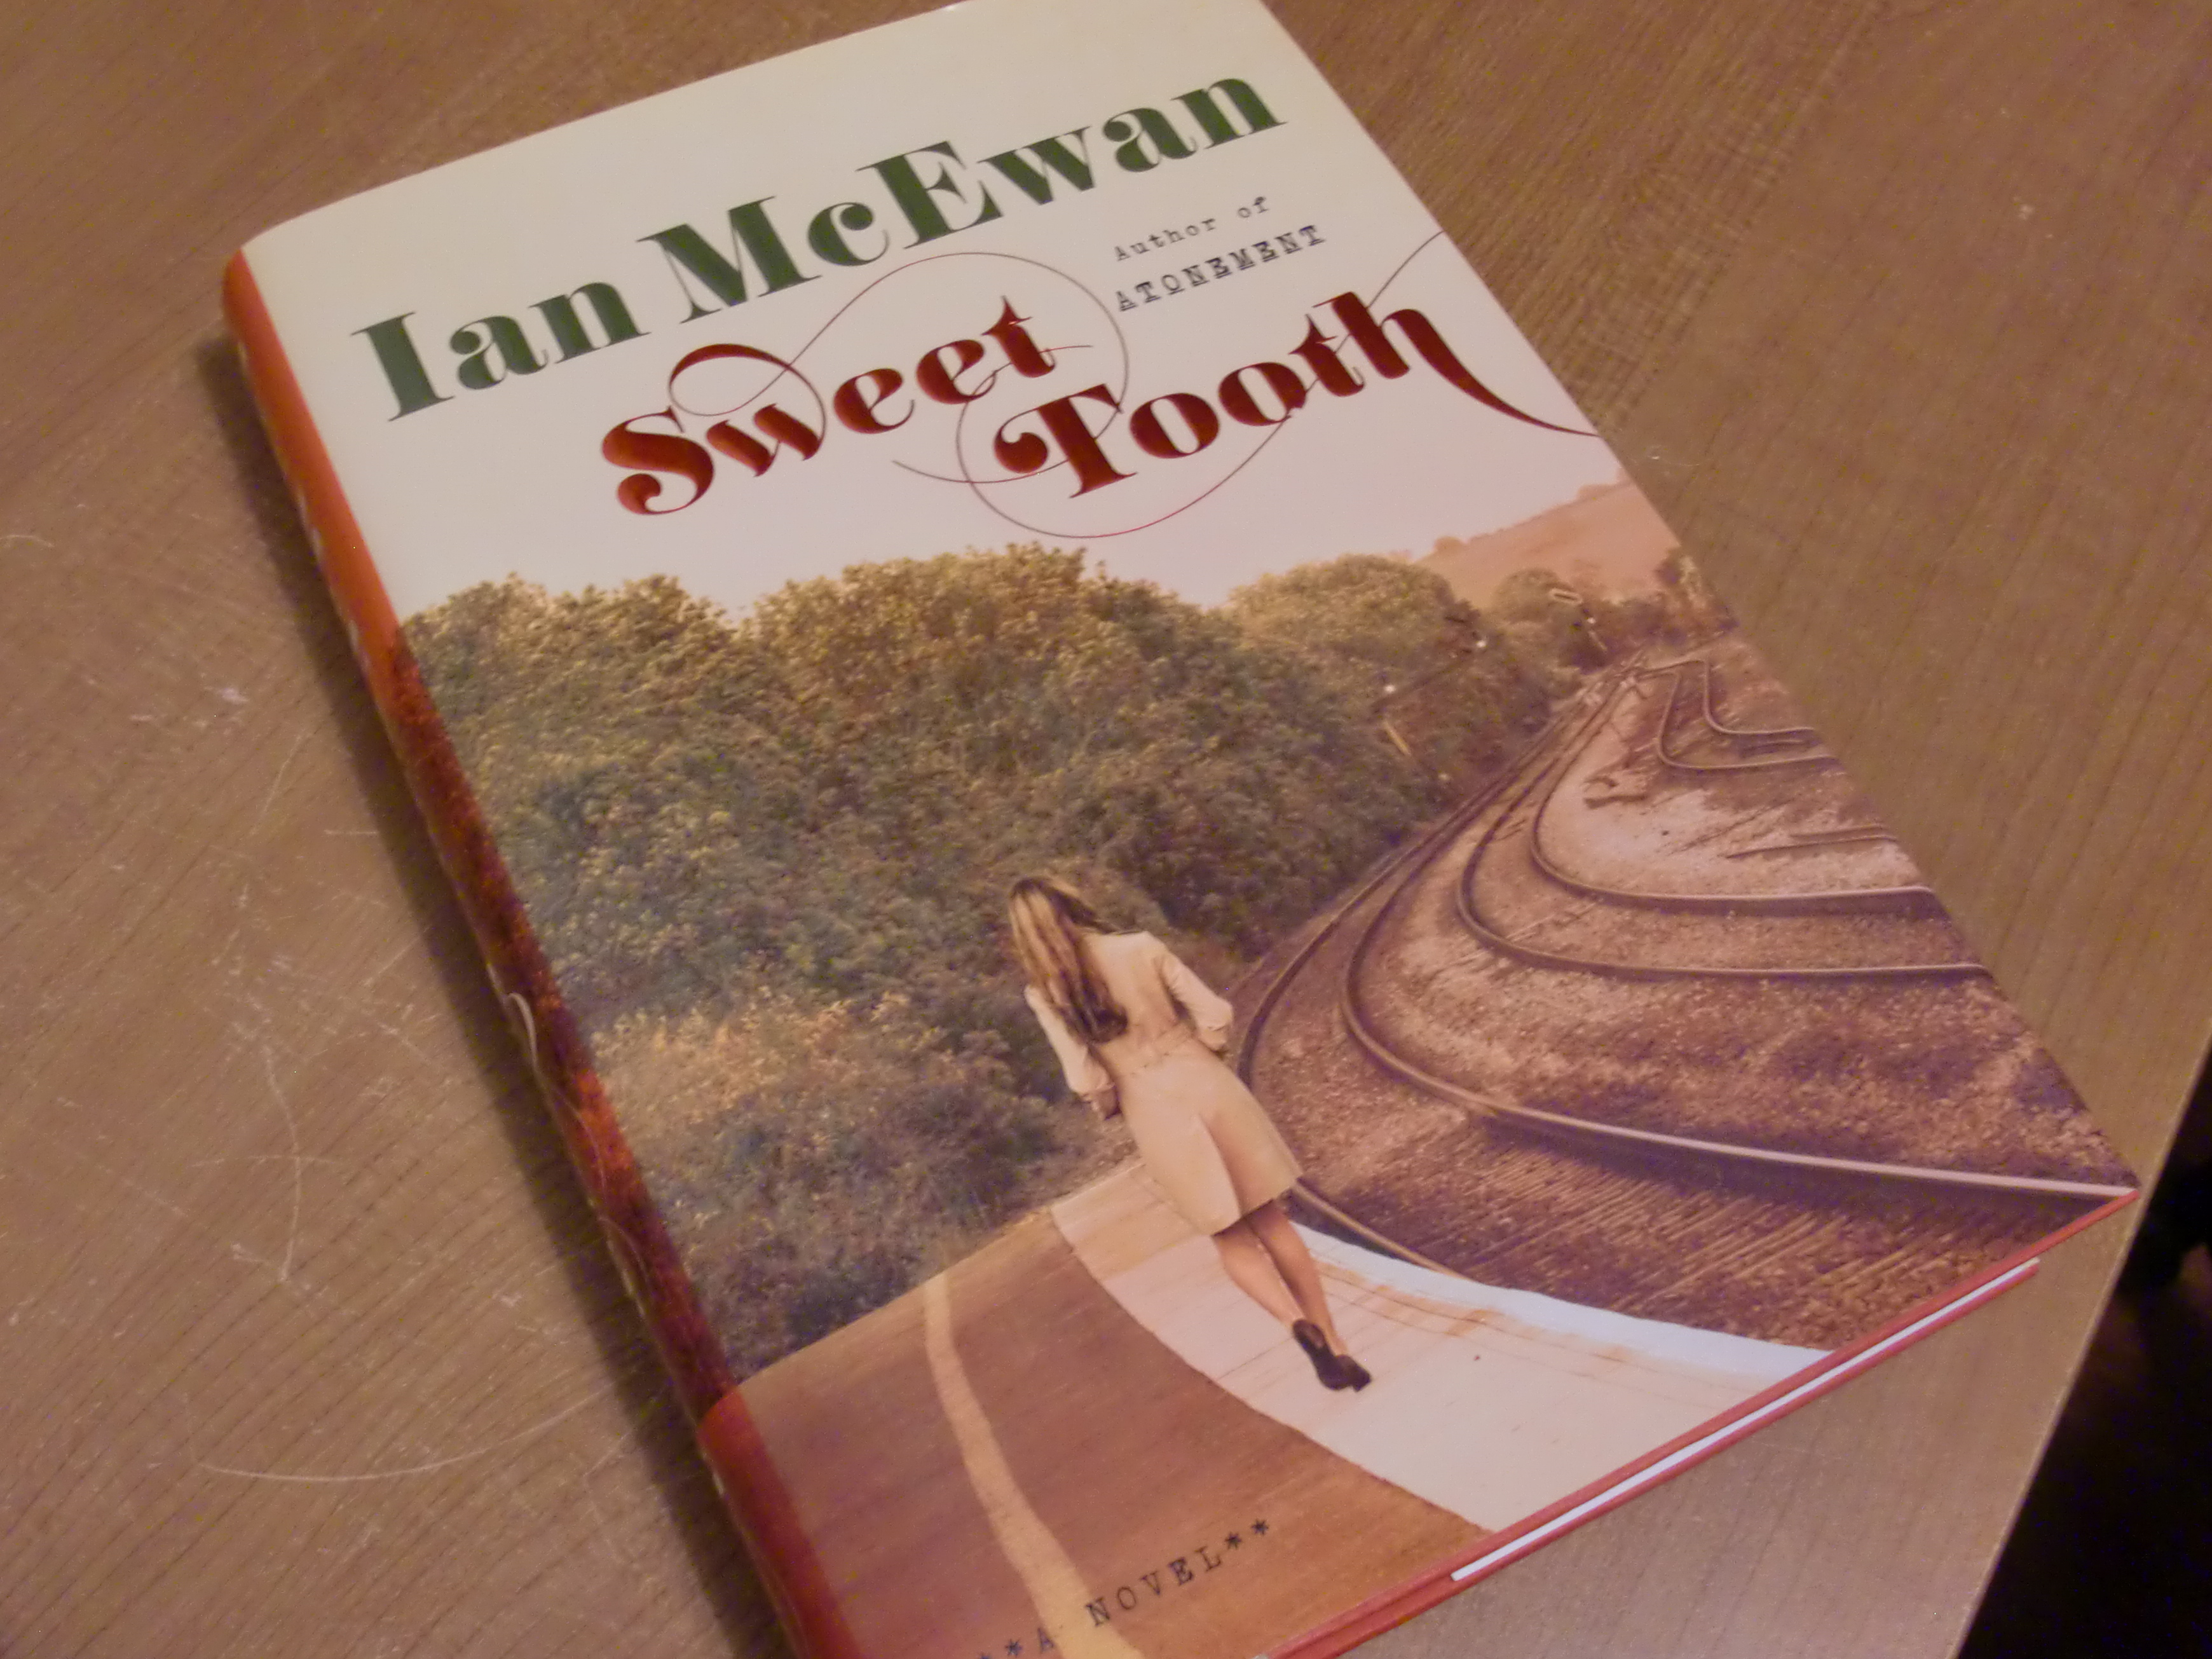 Sweet Tooth Is The Latest Novel From Ian Mcewan